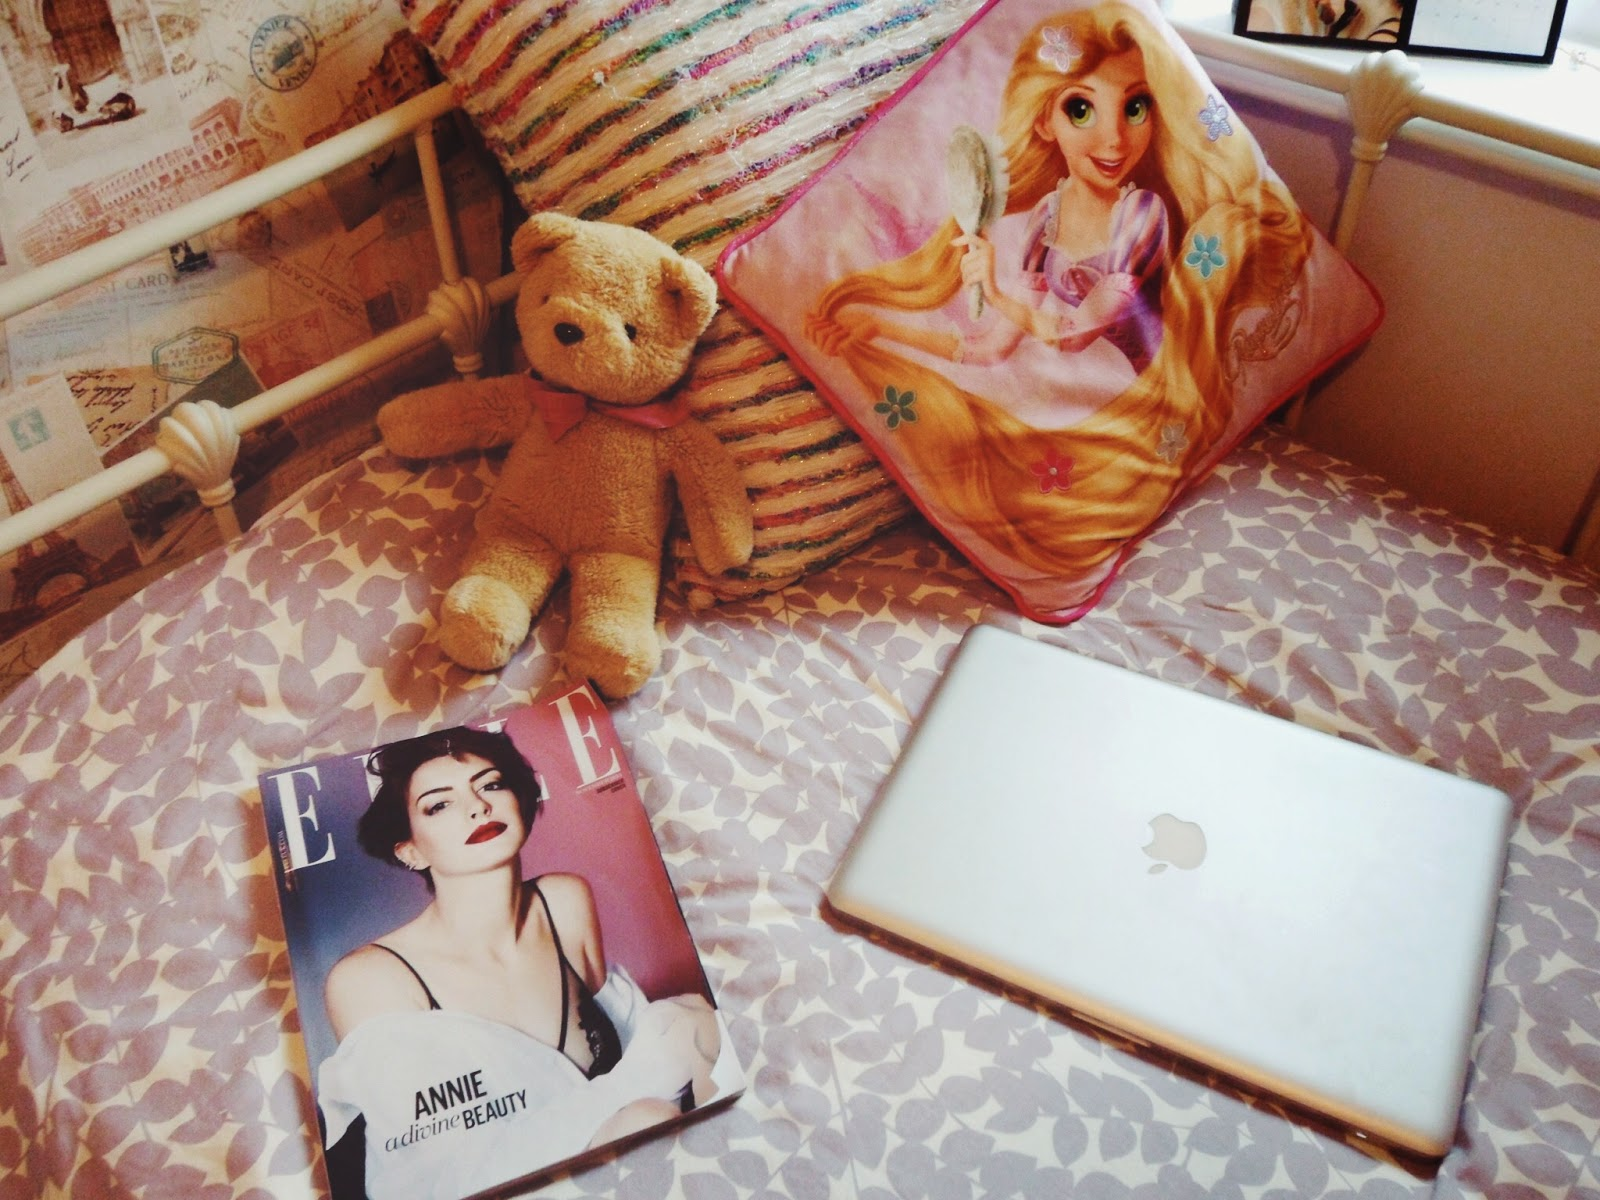 fashionbloggers, bedroom, fbloggers, books, janeausten, cameras, polaroidcamera, typewriter, turntable, music, fashion, interests, personalpost, pandora, porcelaindoll, hedgehog, cushions, ellemagazine, stephenfry, alexachung, photography,